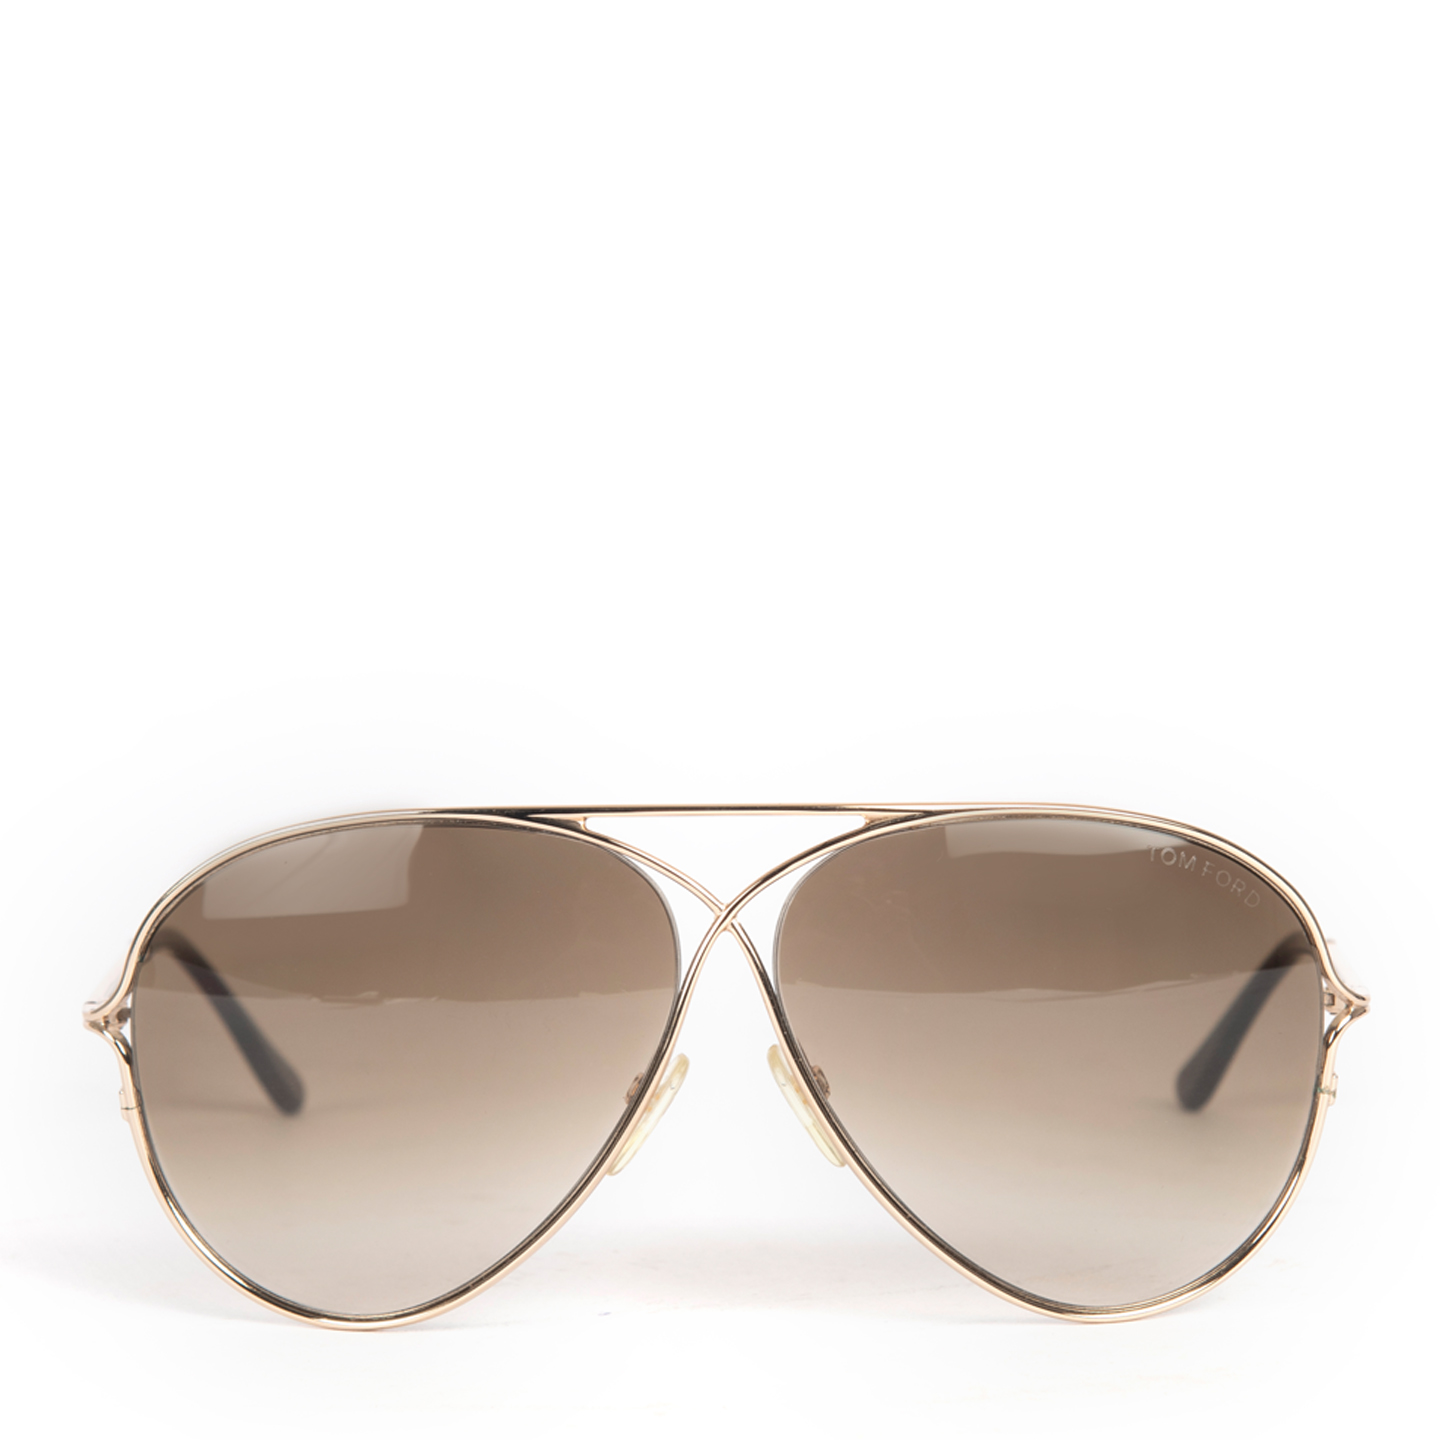 Tom Ford Peter Aviator Sunglasses TF142 (01)